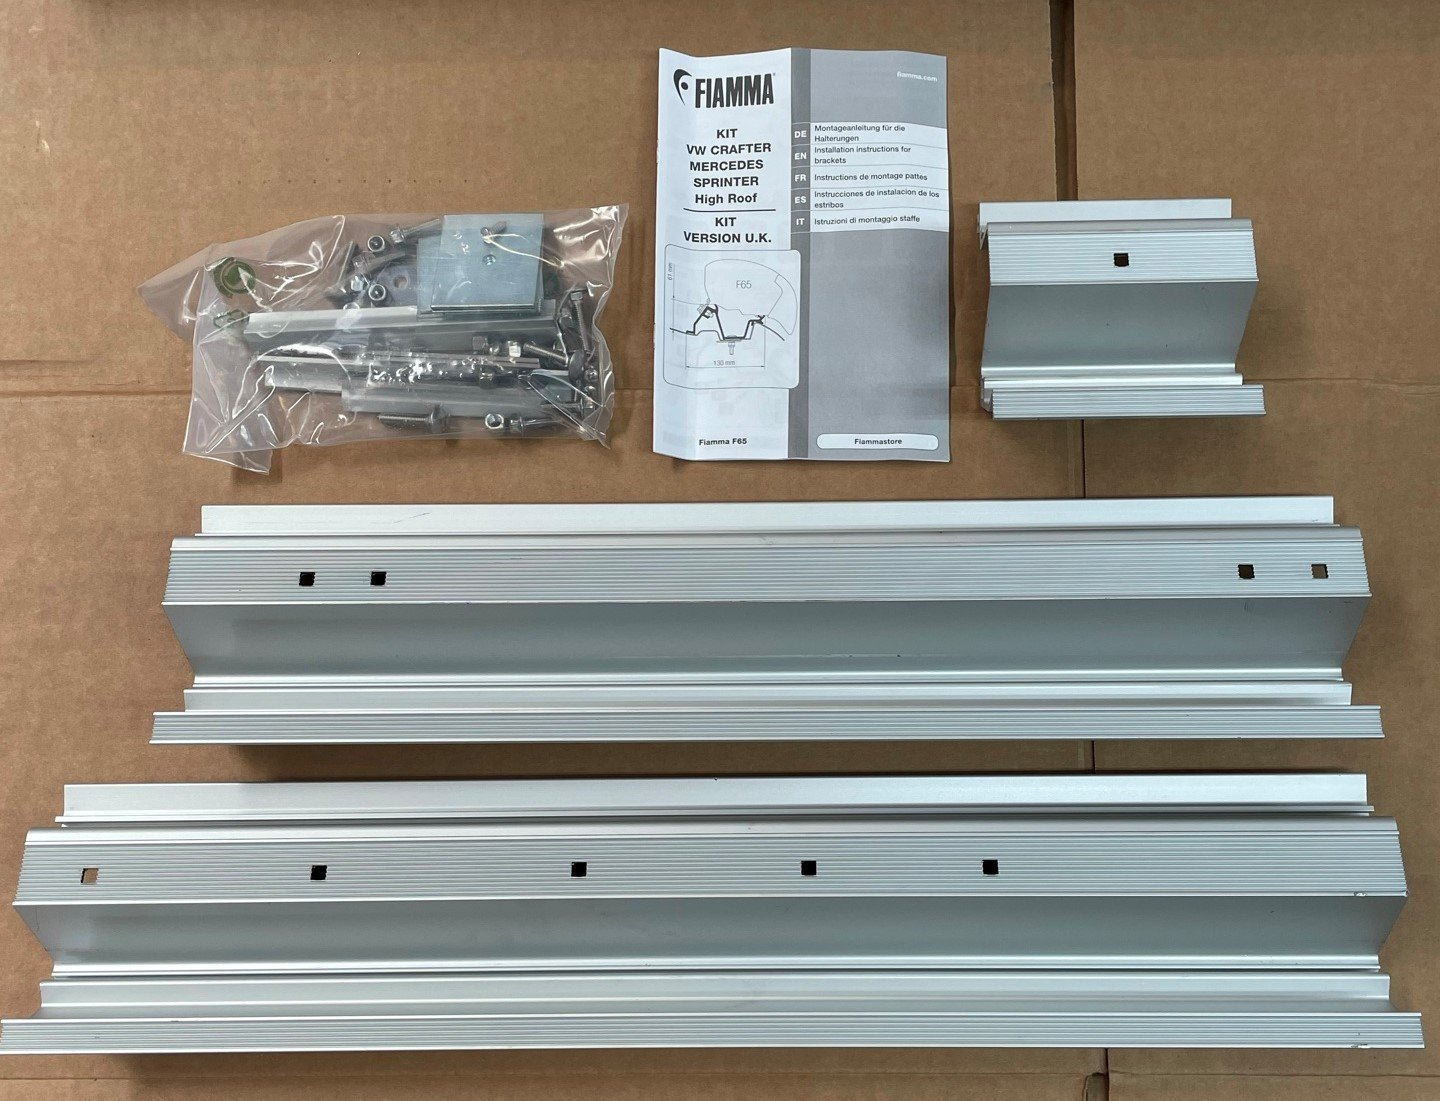 FIAMMA F65 AWN FIXING KIT FOR MERCEDES SPRINTER. 98655-889-98655-746 Fiamma